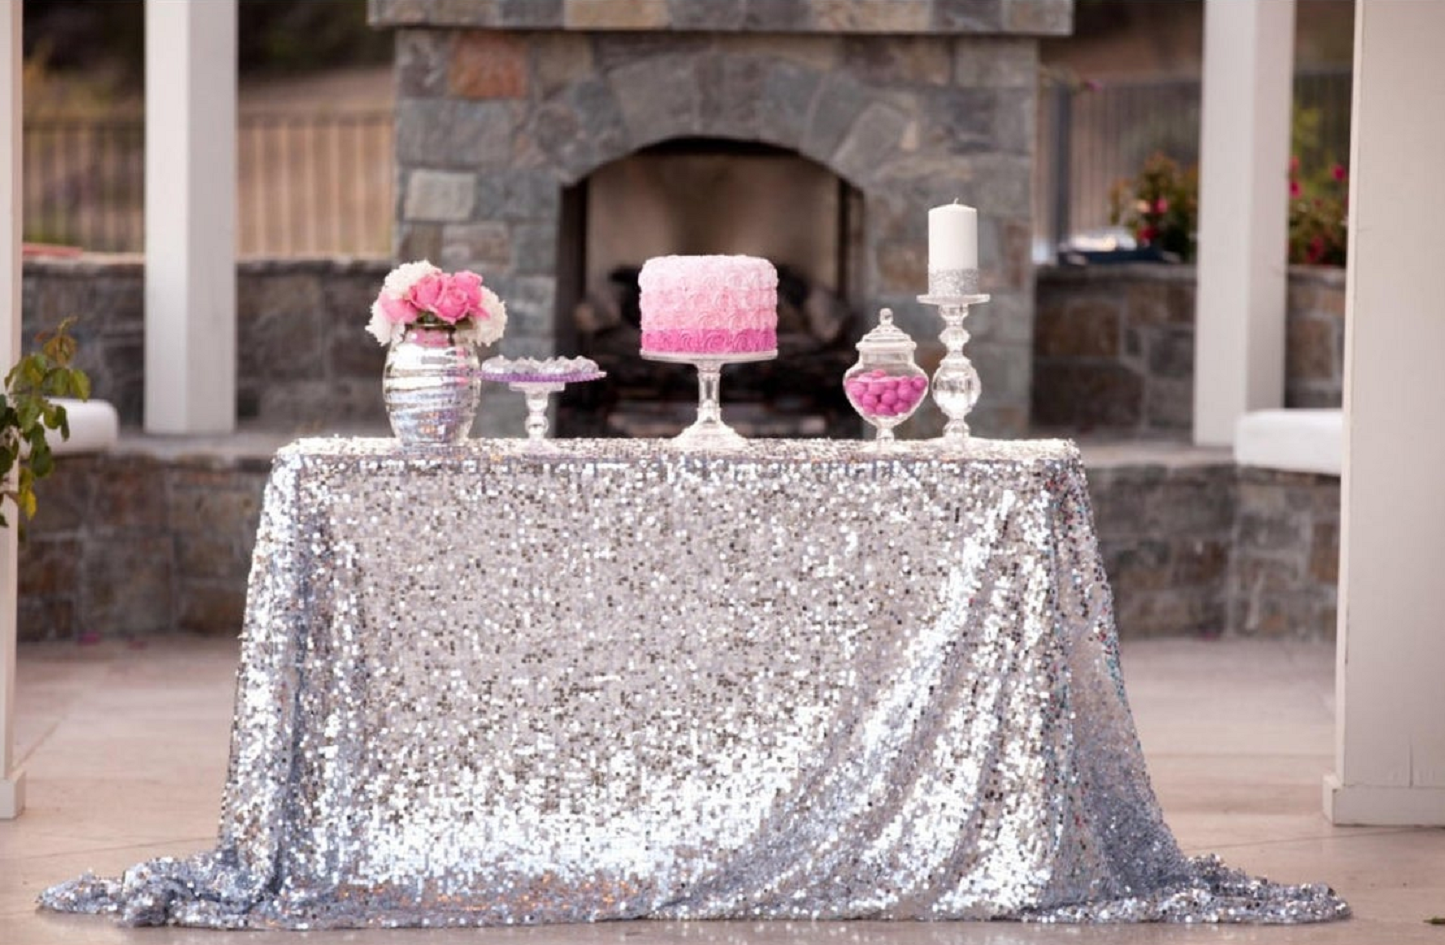 Bling wedding receptions Silver Sequin Wedding Cake Tablecloth with Crystal Flower Vase and Cake Raiser